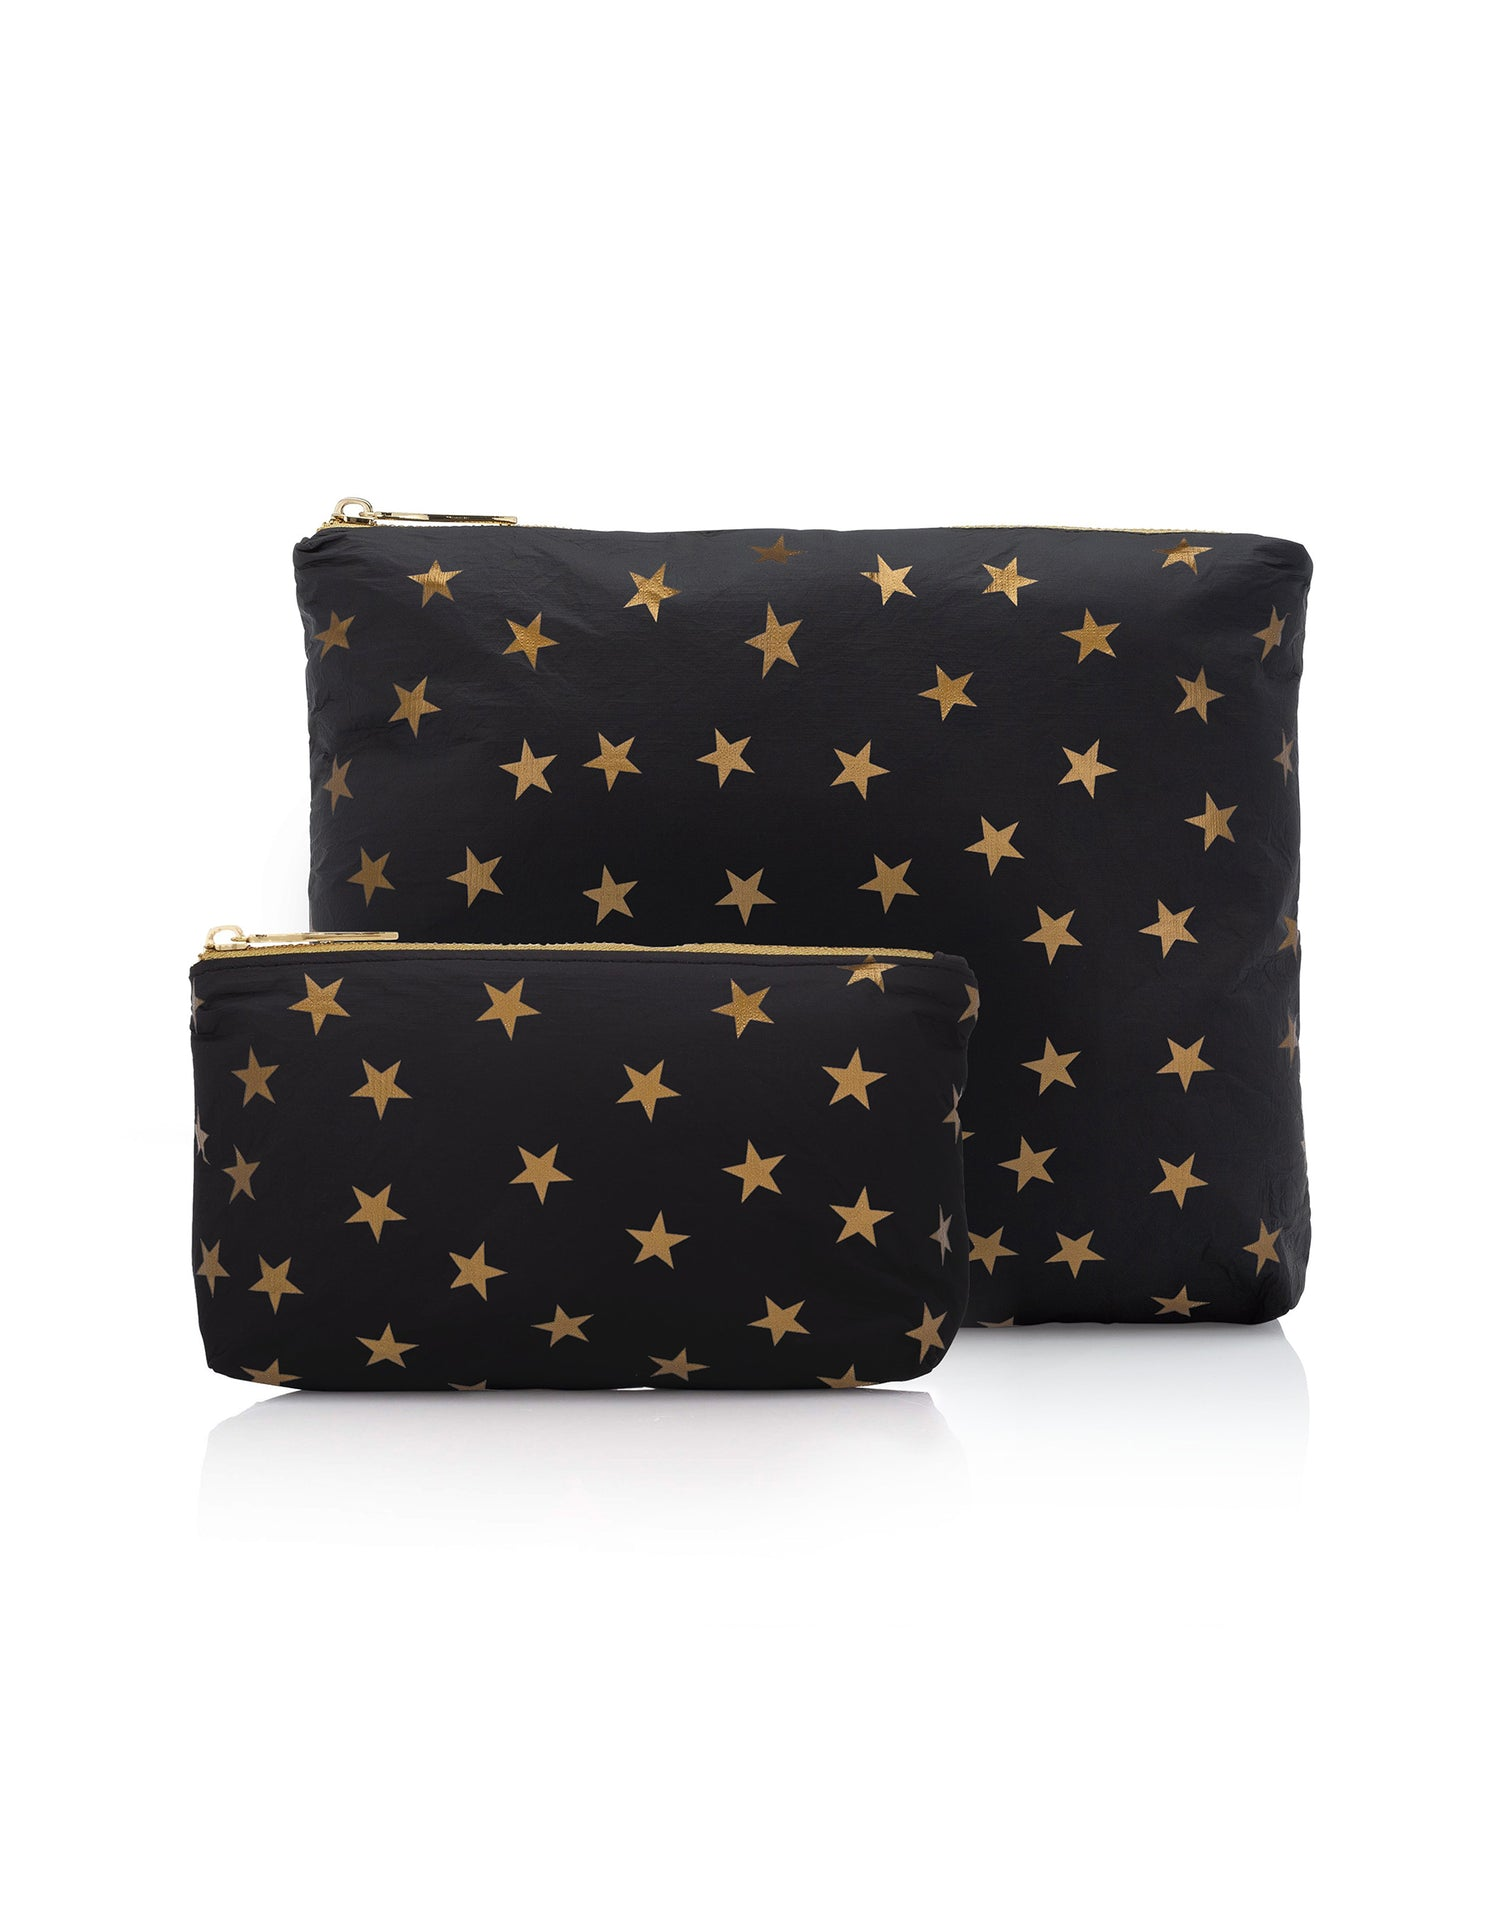 Hi Love's Two-Piece Star Travel Case Set in Black - Product View